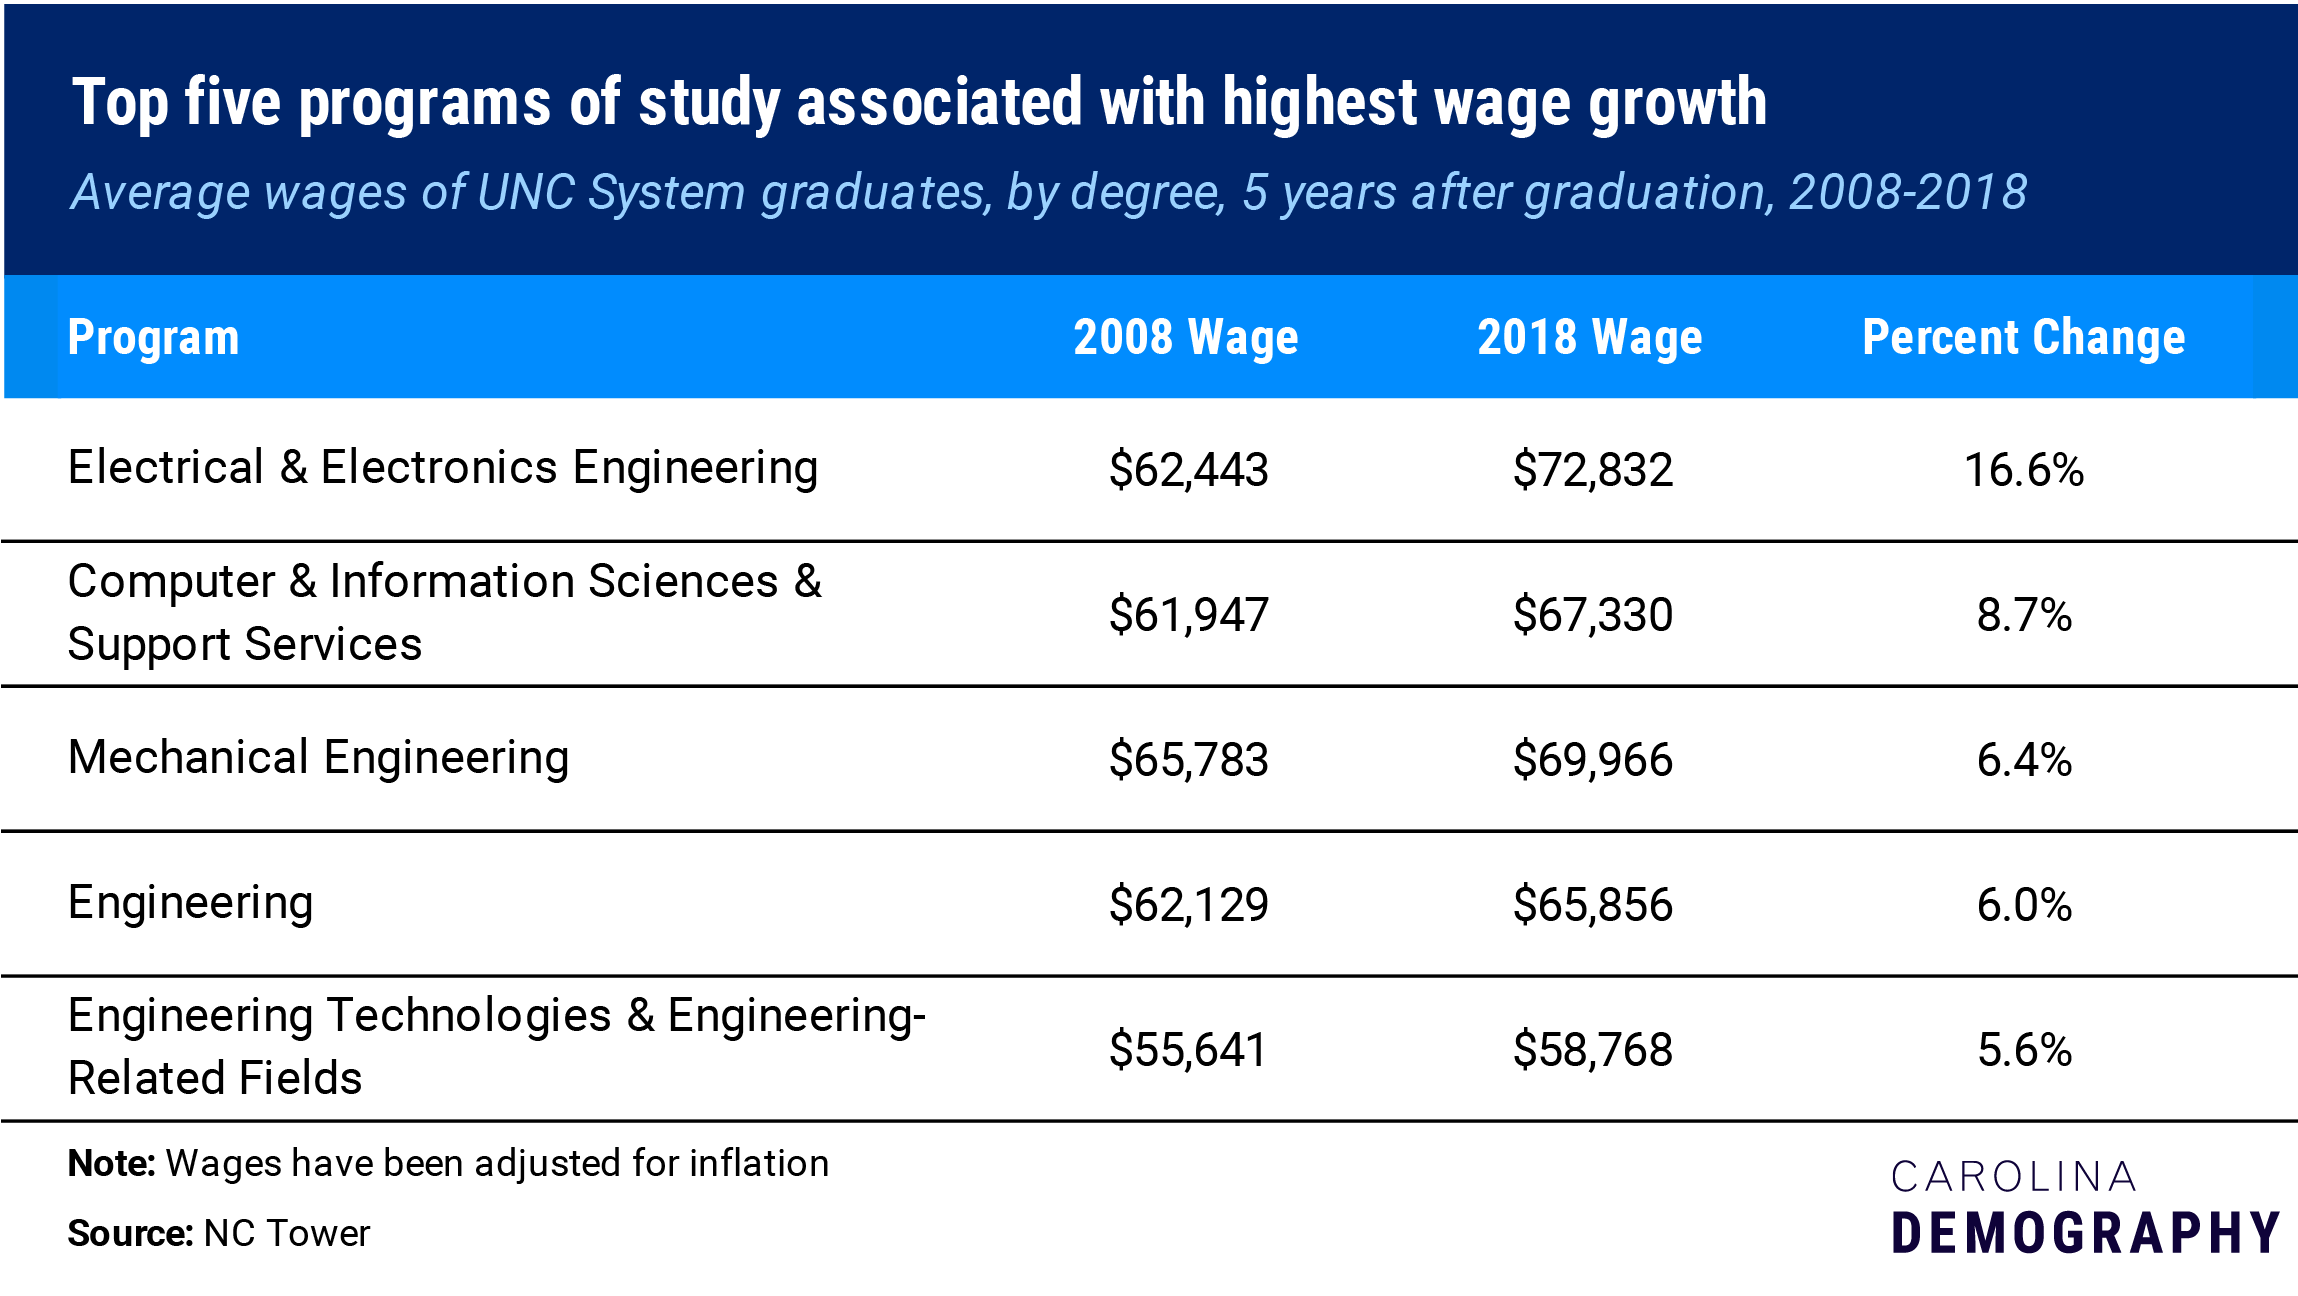 top 5 programs associated with highest wage growth